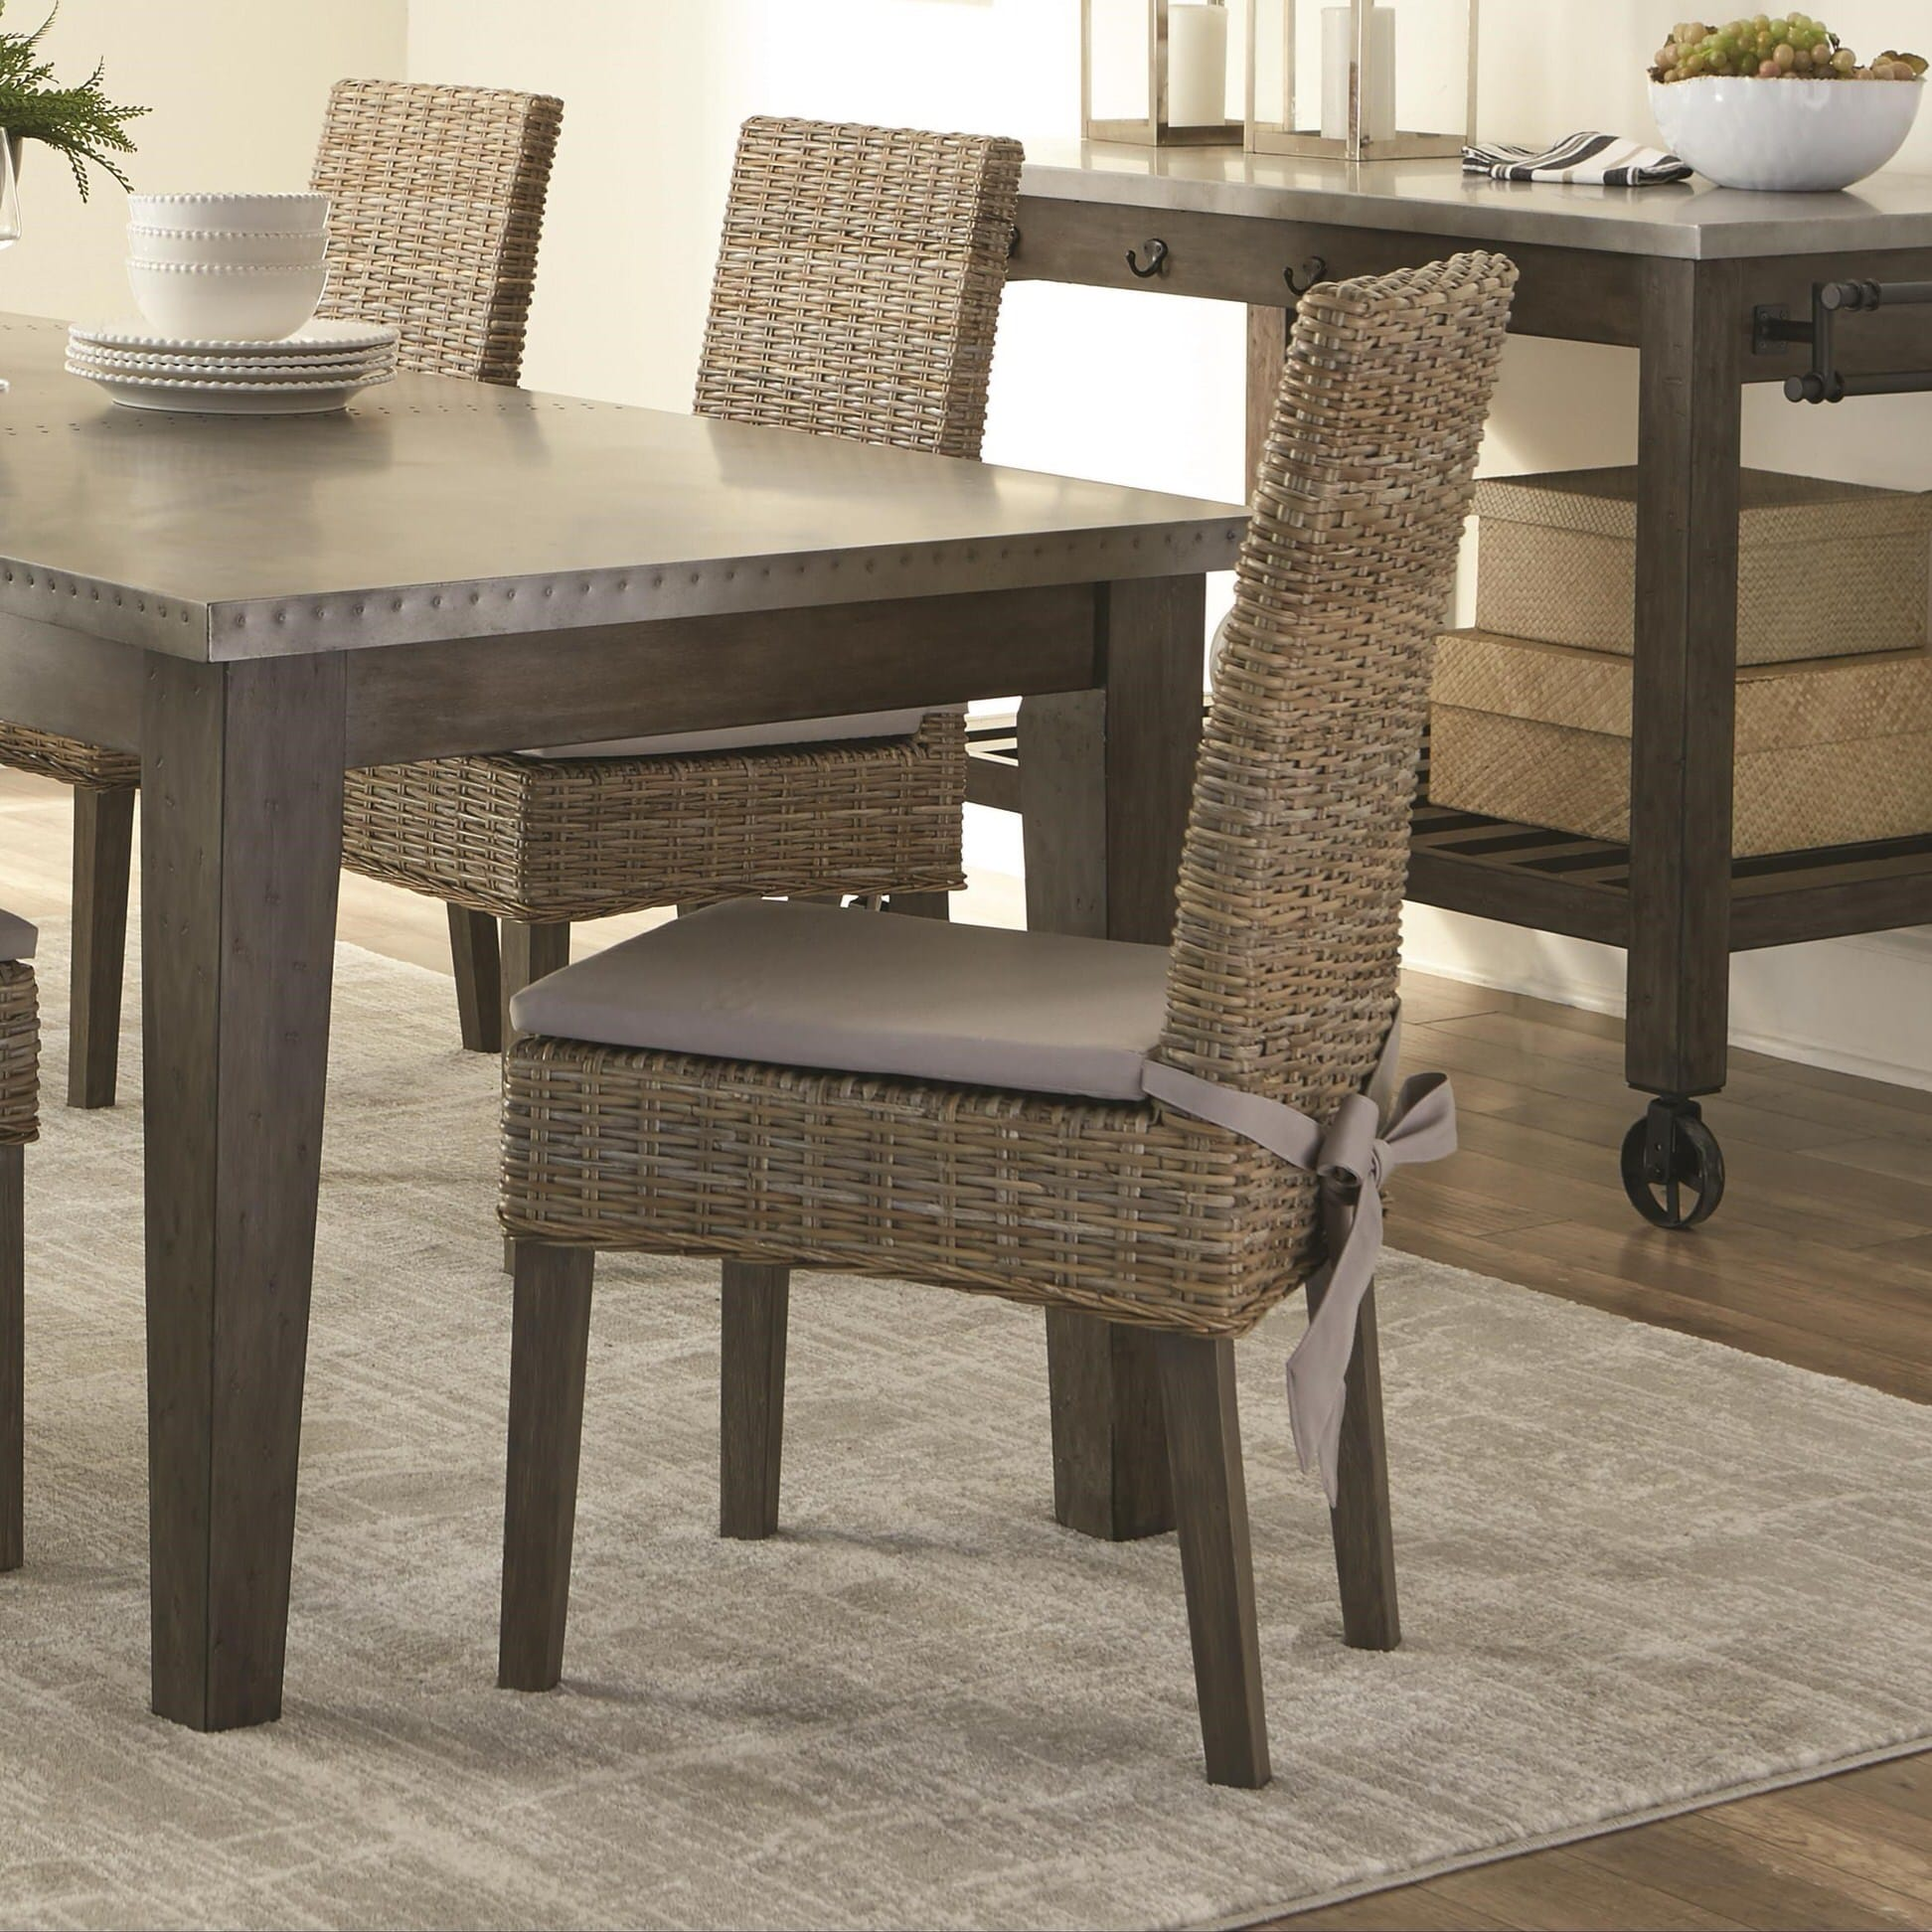 103803 Rattan Woven Dining Chair Set Of 2 By Scott Living